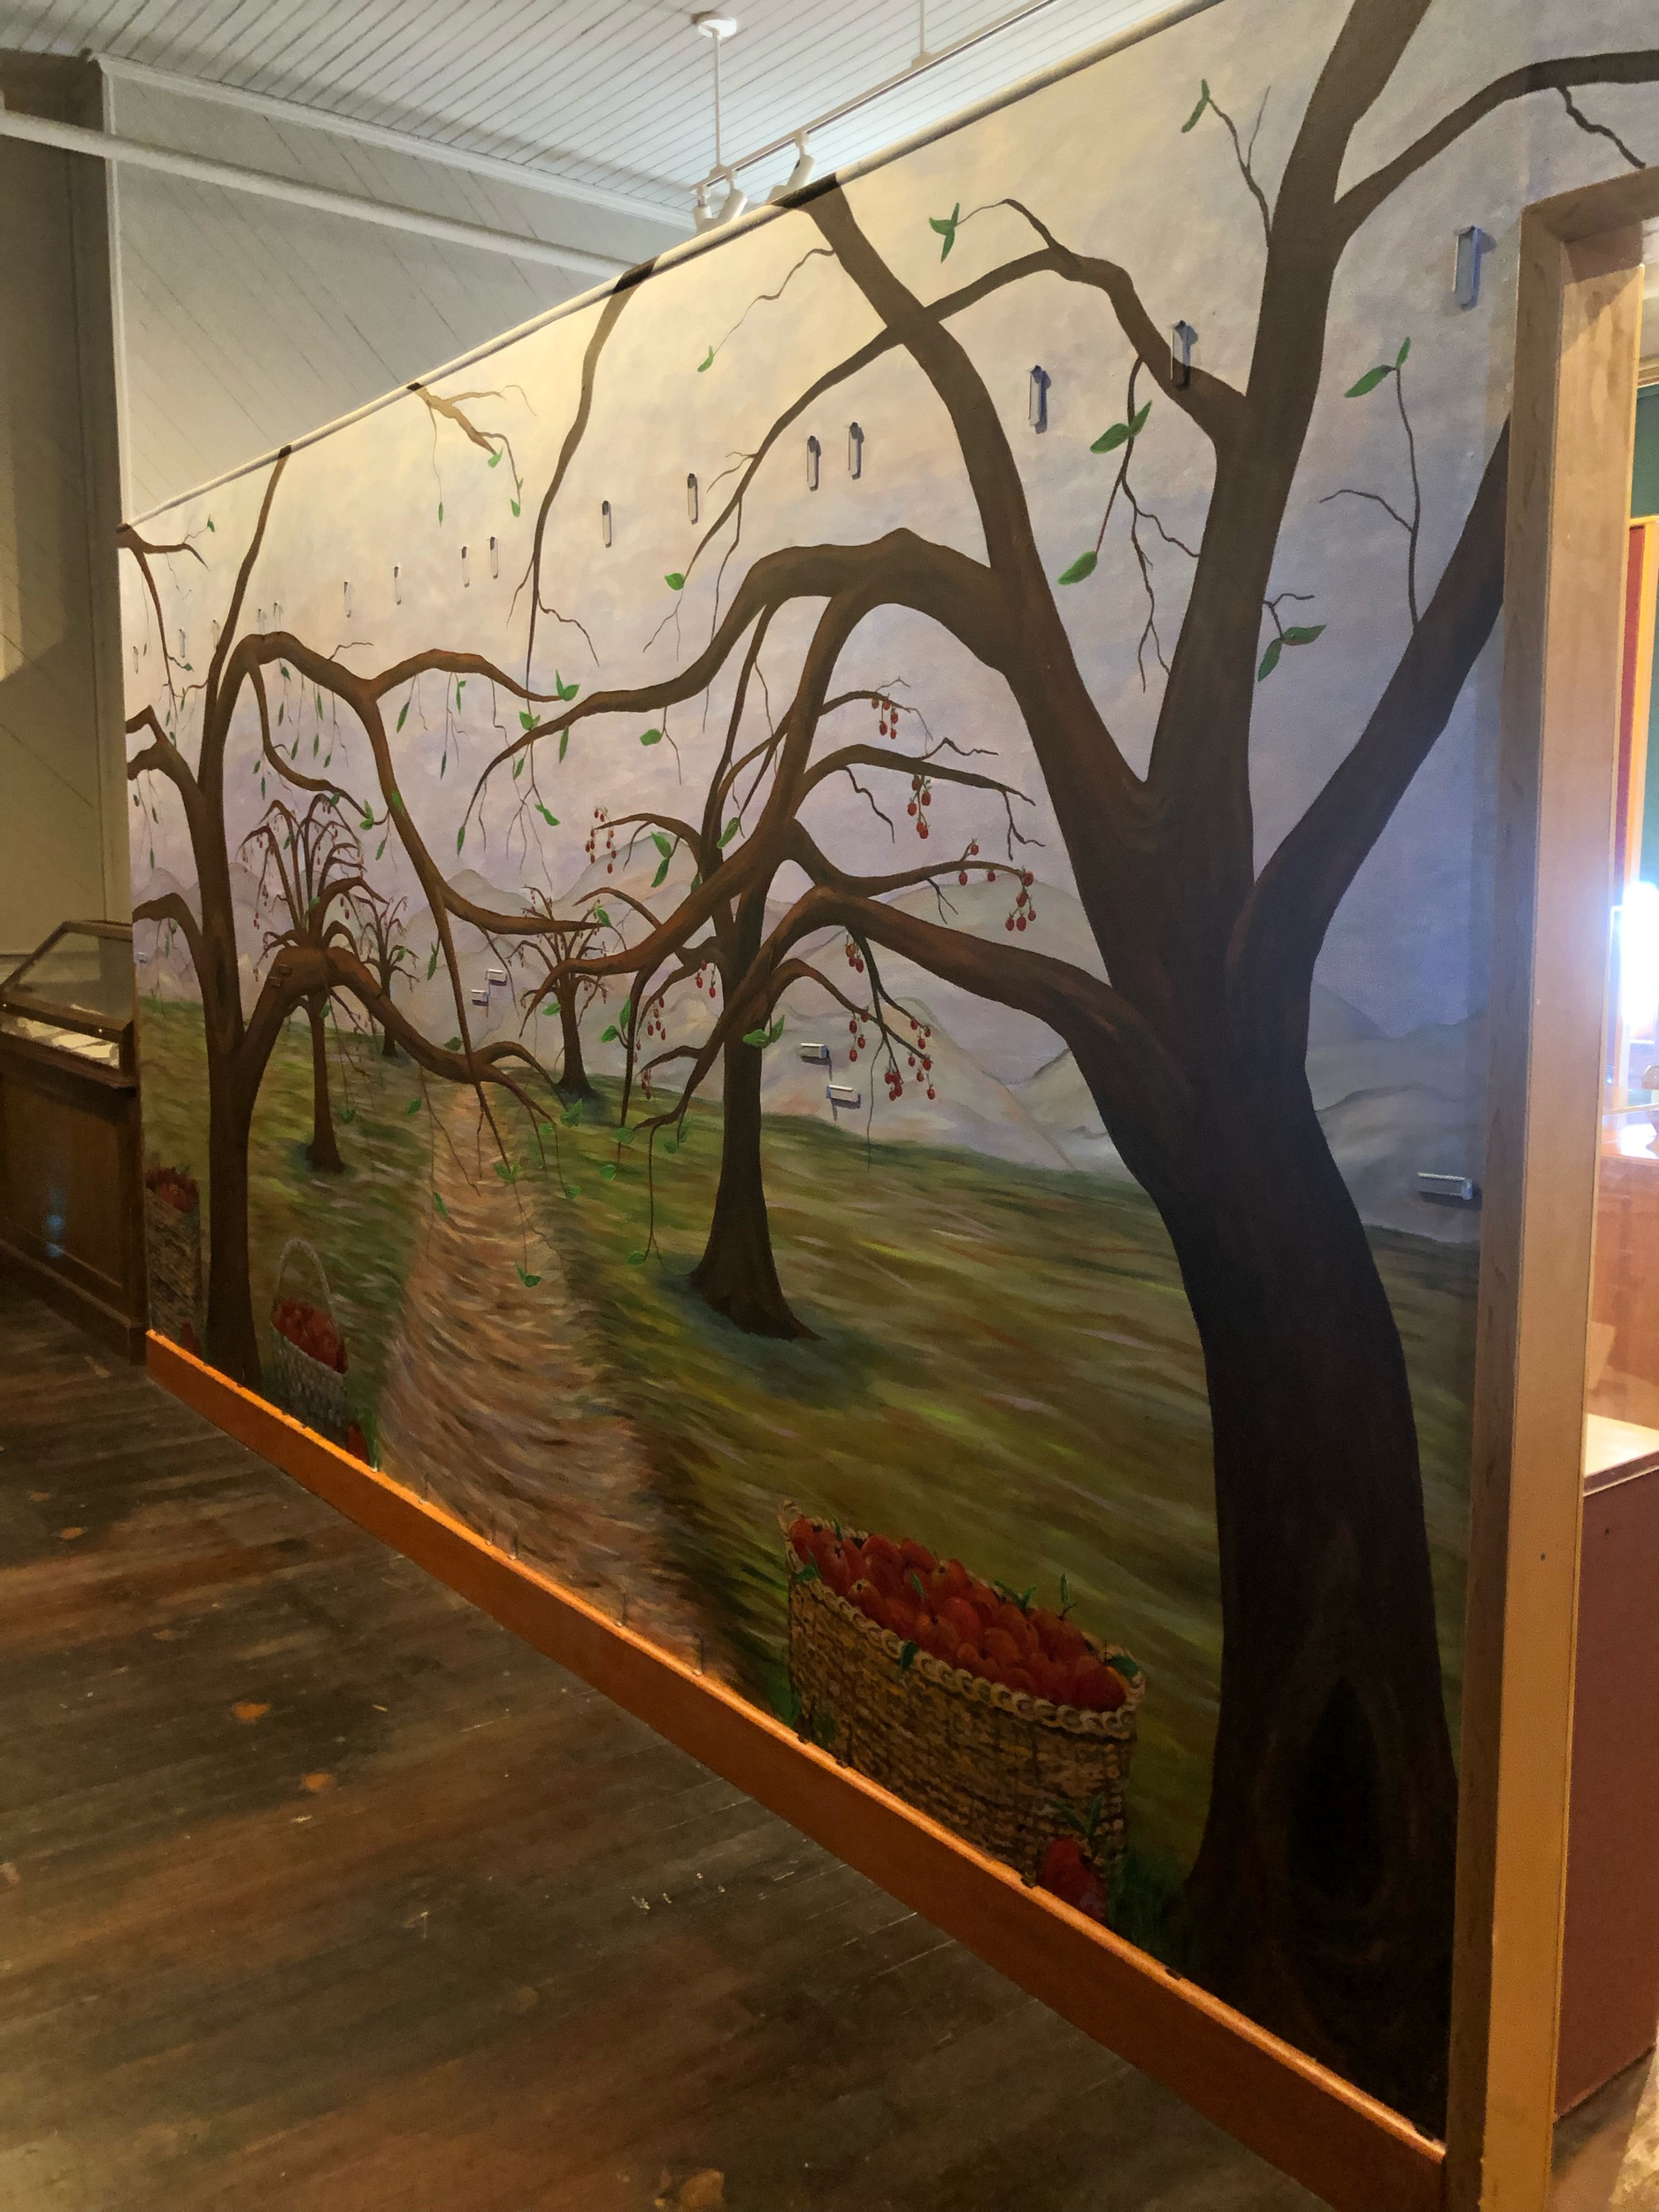 Donor Wall Mural for The Historic Fourth Ward School Museum- the museum will apply apples engraved with key donor names